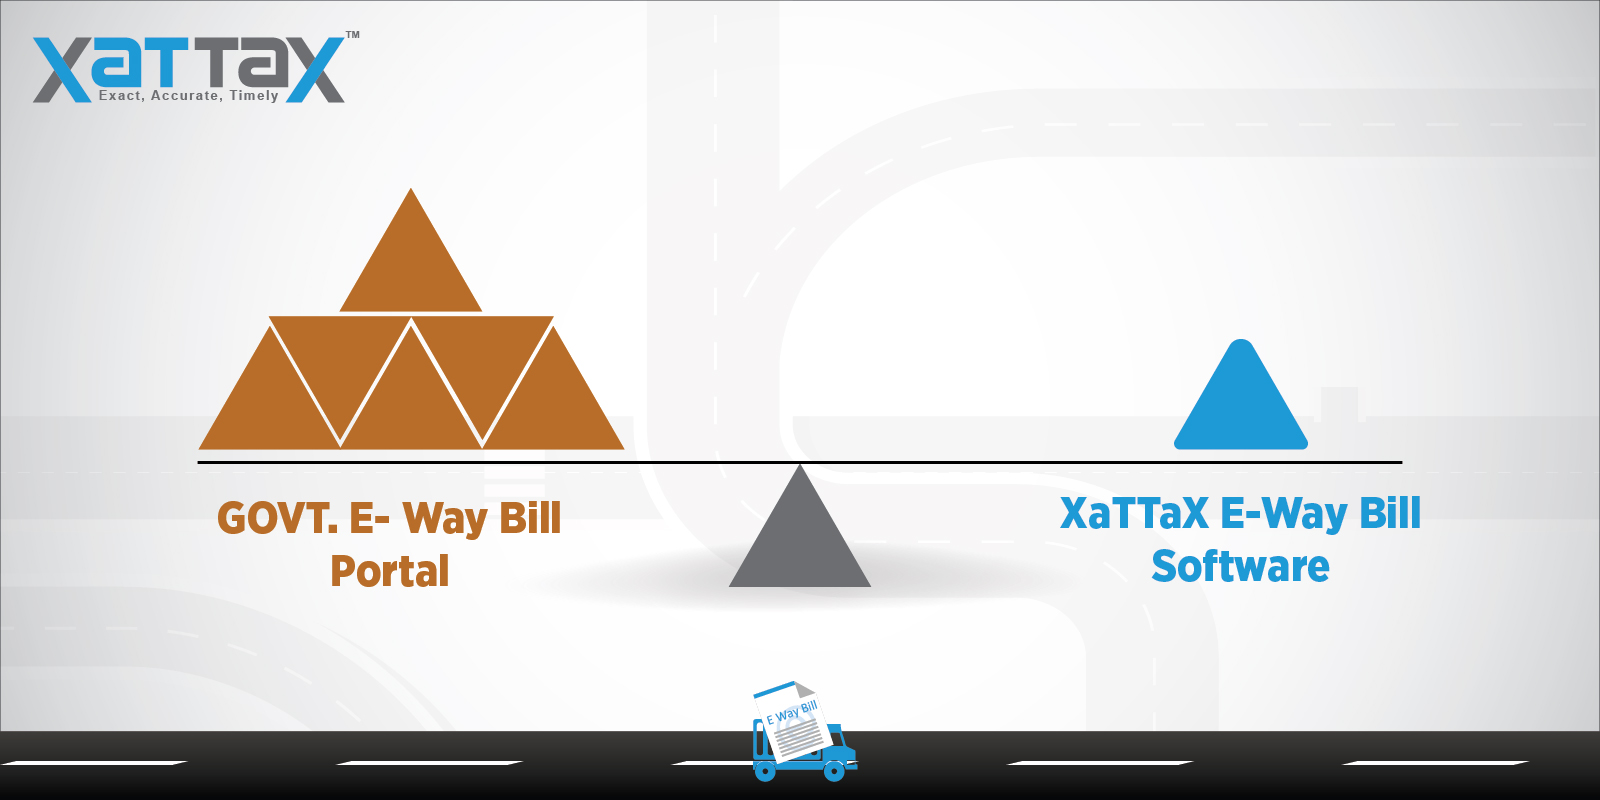 E-Way Bill Solution: Comparison between Govt Portal vs XaTTaX